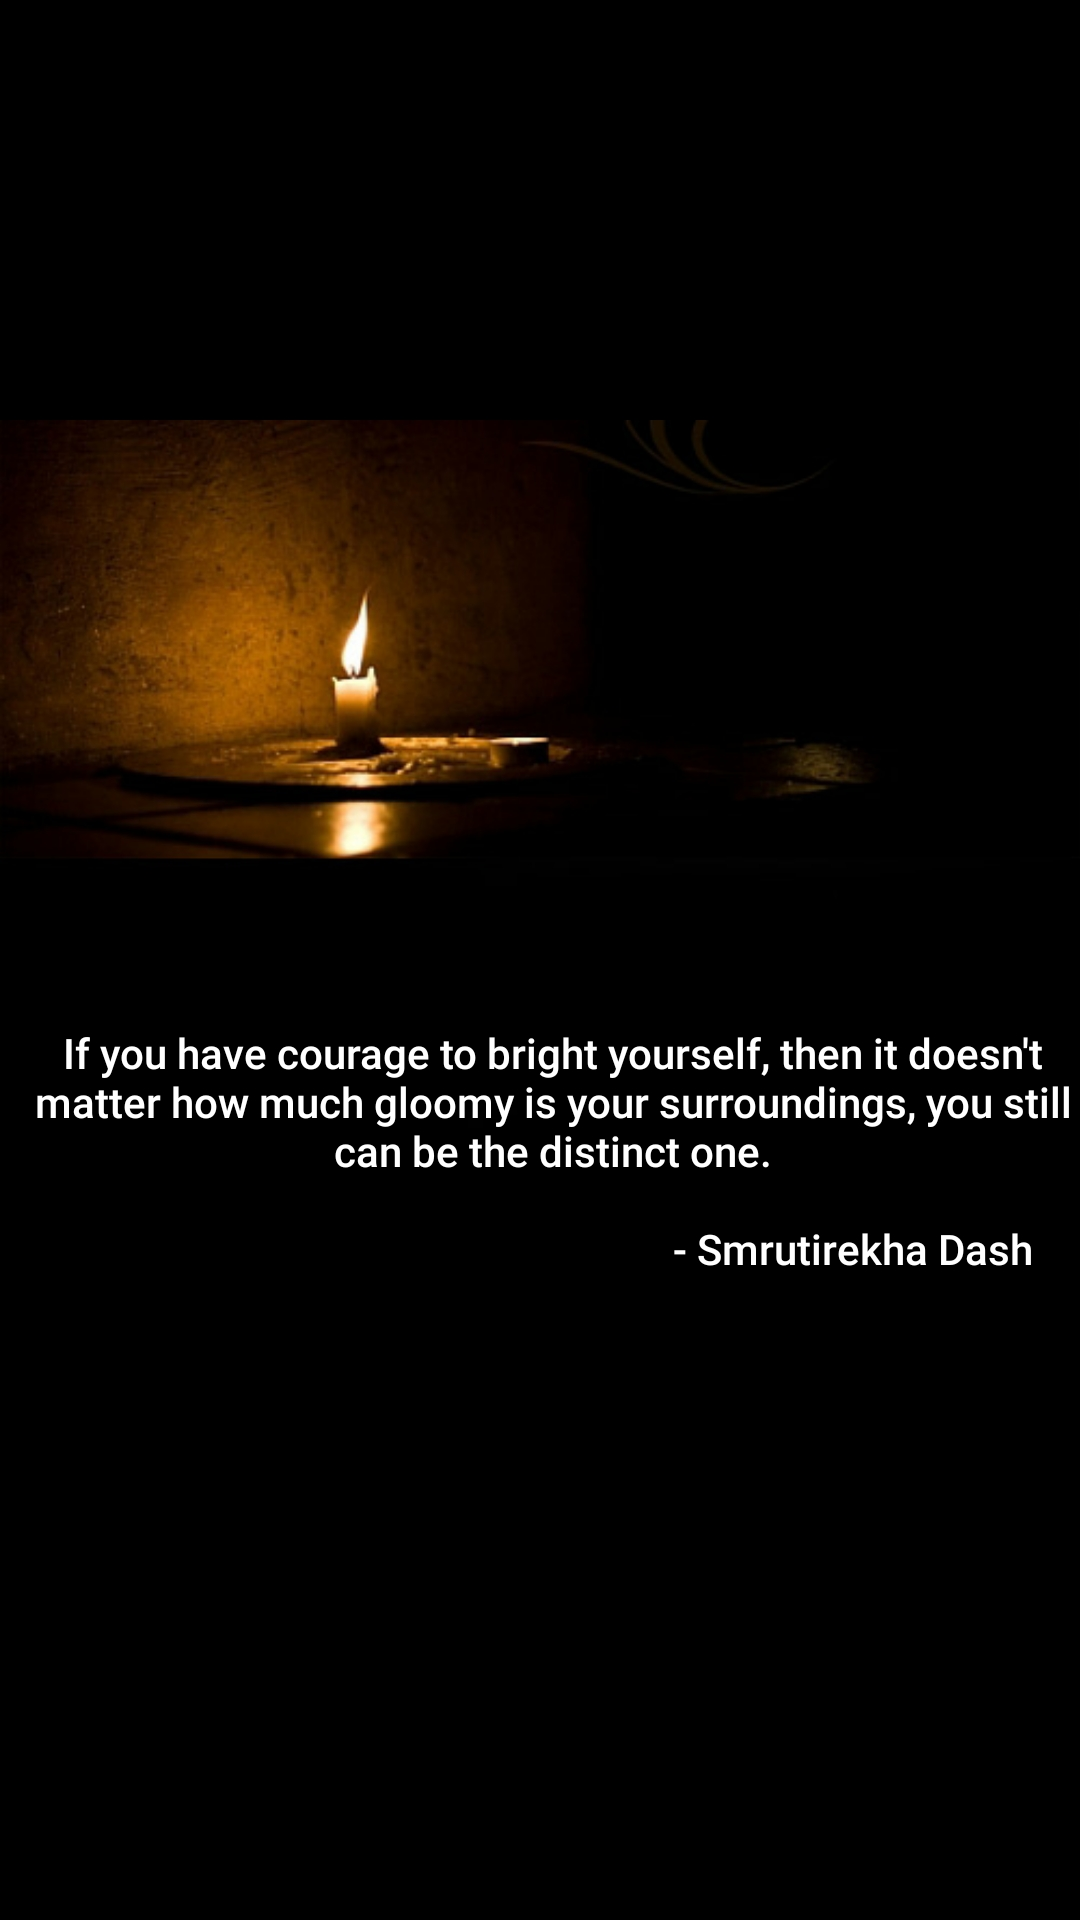 If you have courage to bright yourself, then it doesn't matter how much gloomy is your surroundings, you still can be the distinct one.                                                              - Smrutirekha Dash